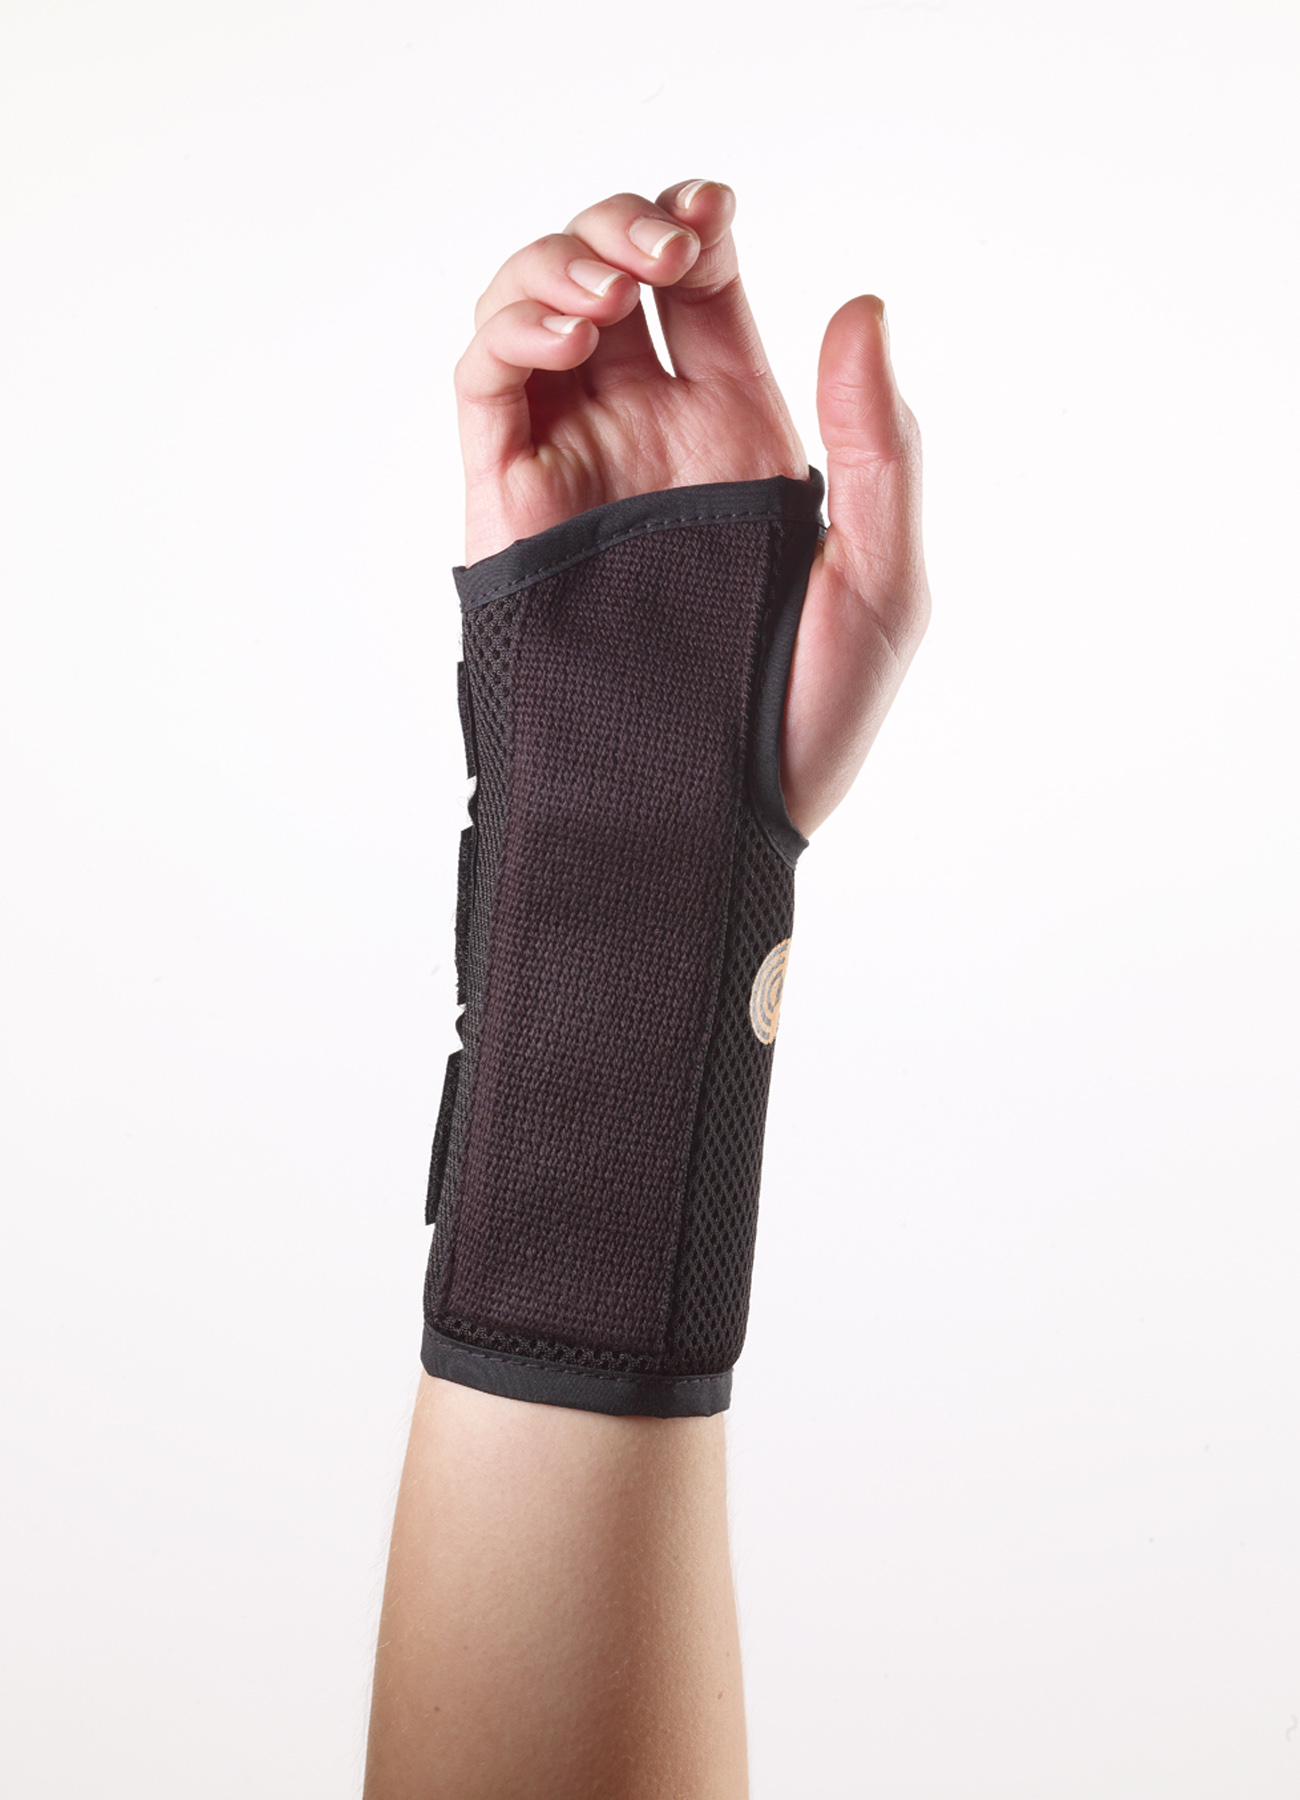 Ultra Fit Cool Wrist Splint